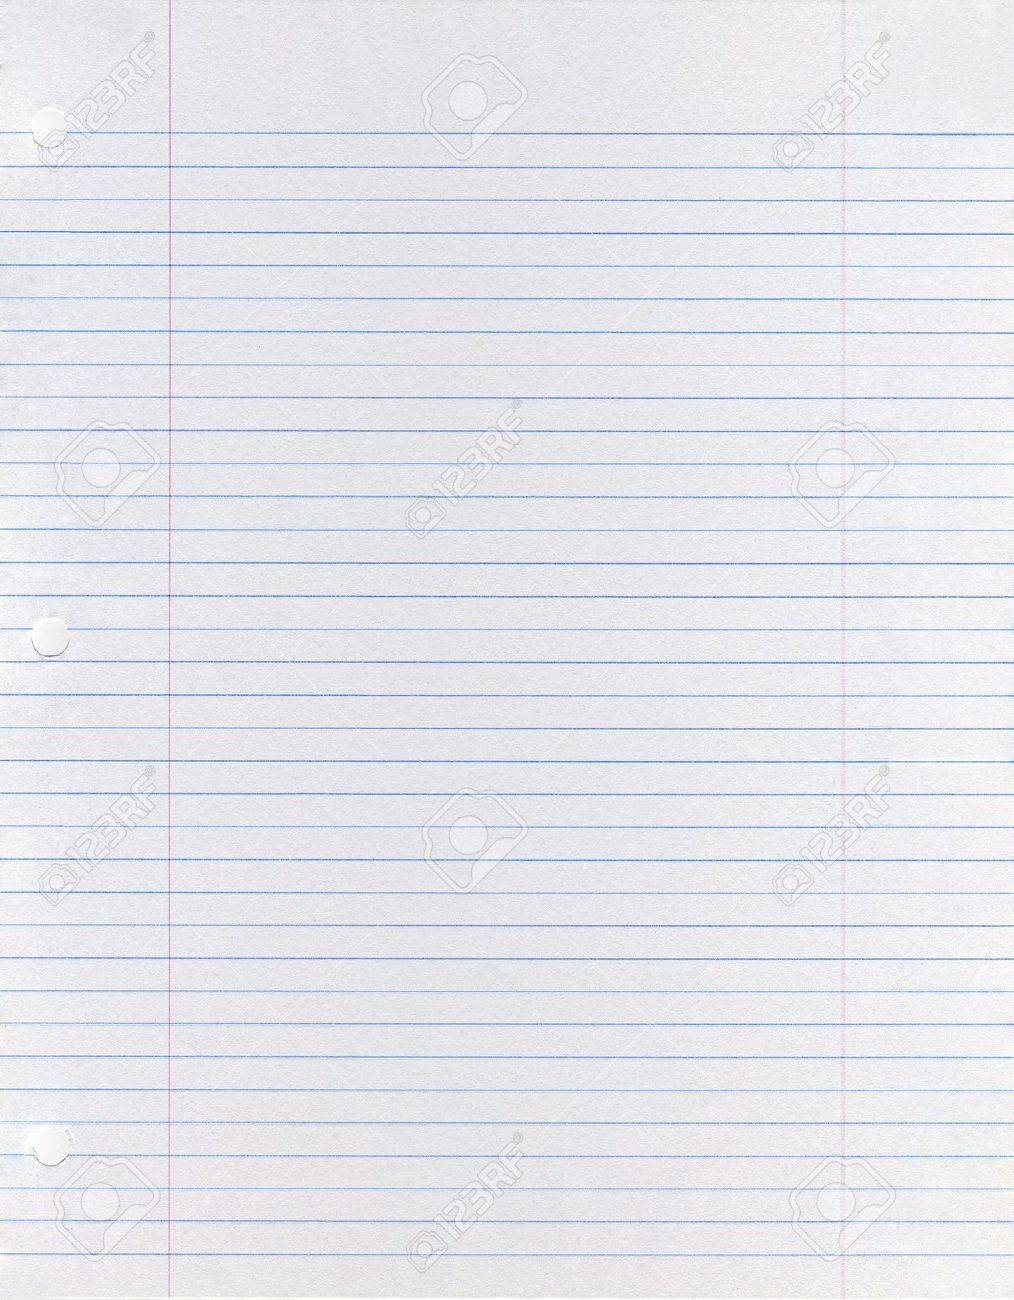 Looseleaf Loose Leaf 11677325